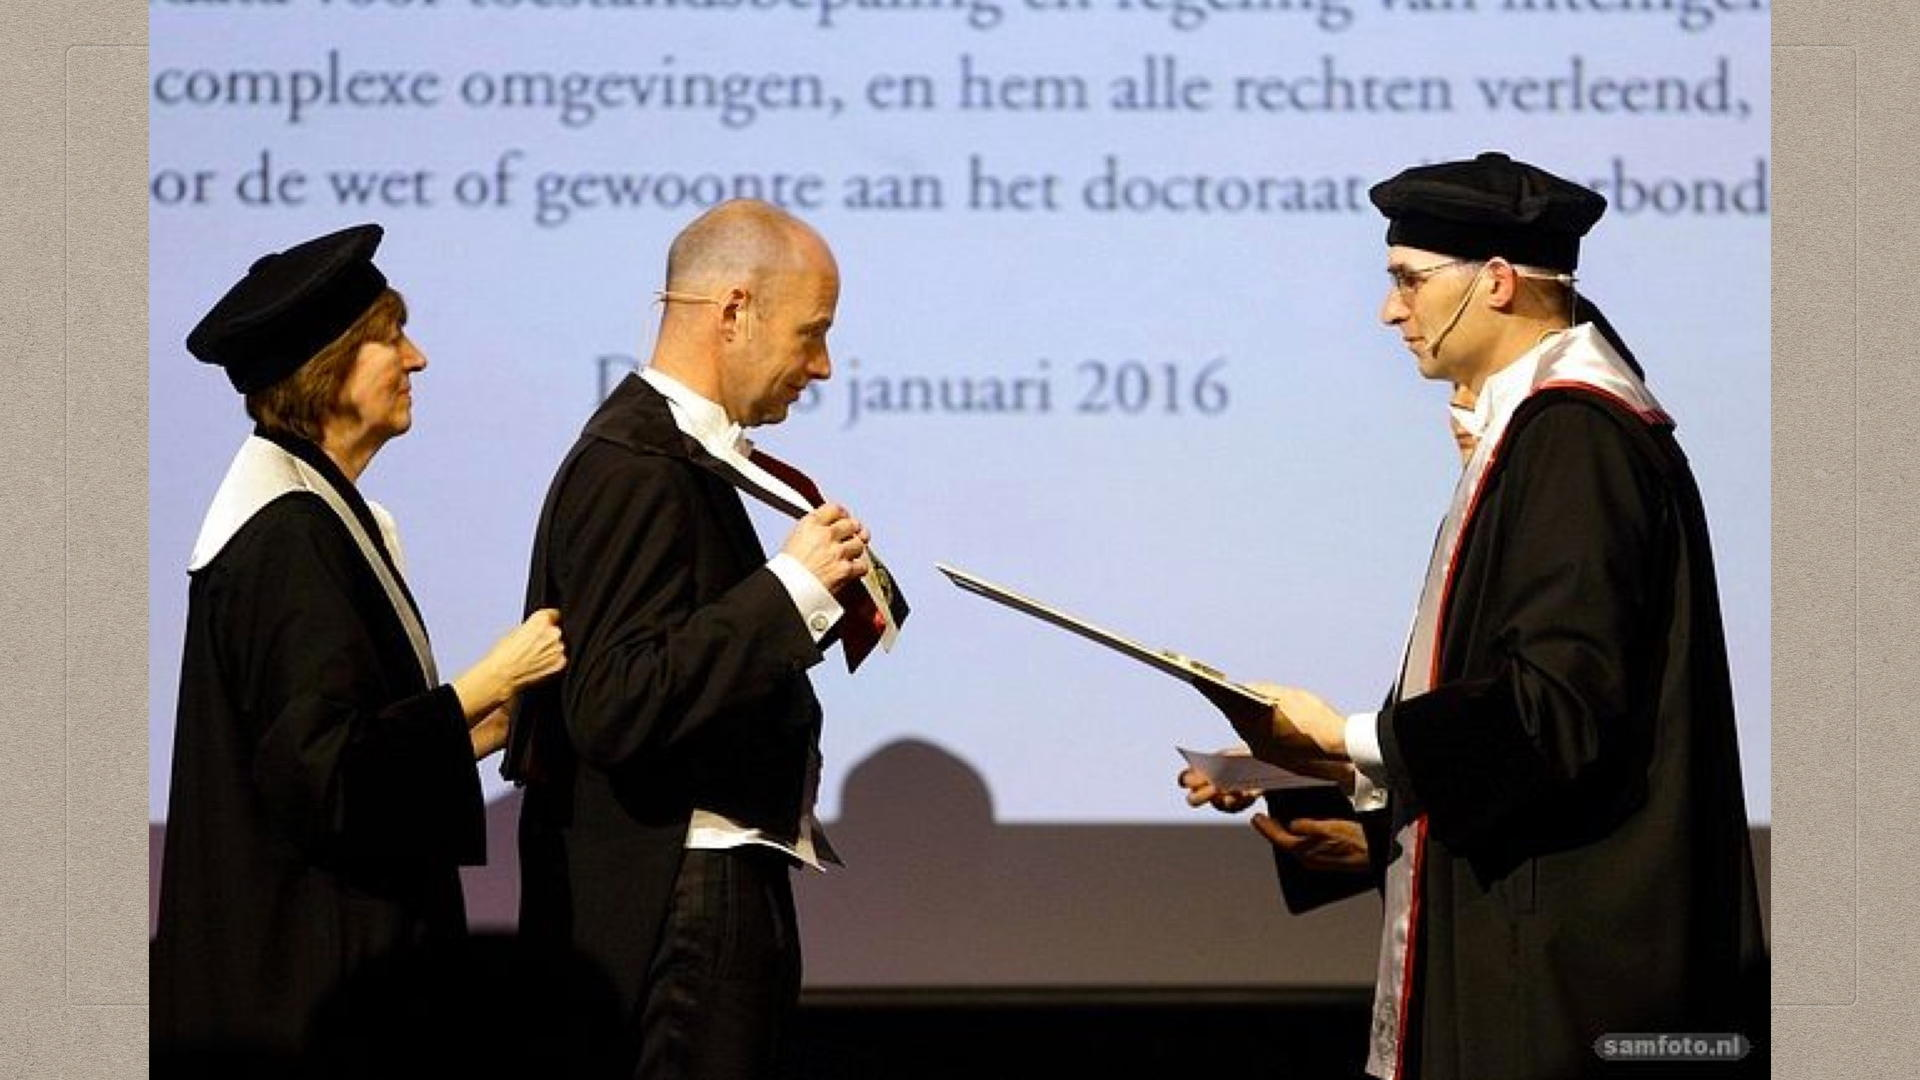 02-01-Thrun Receives Honorary Doctorate at TU Delft